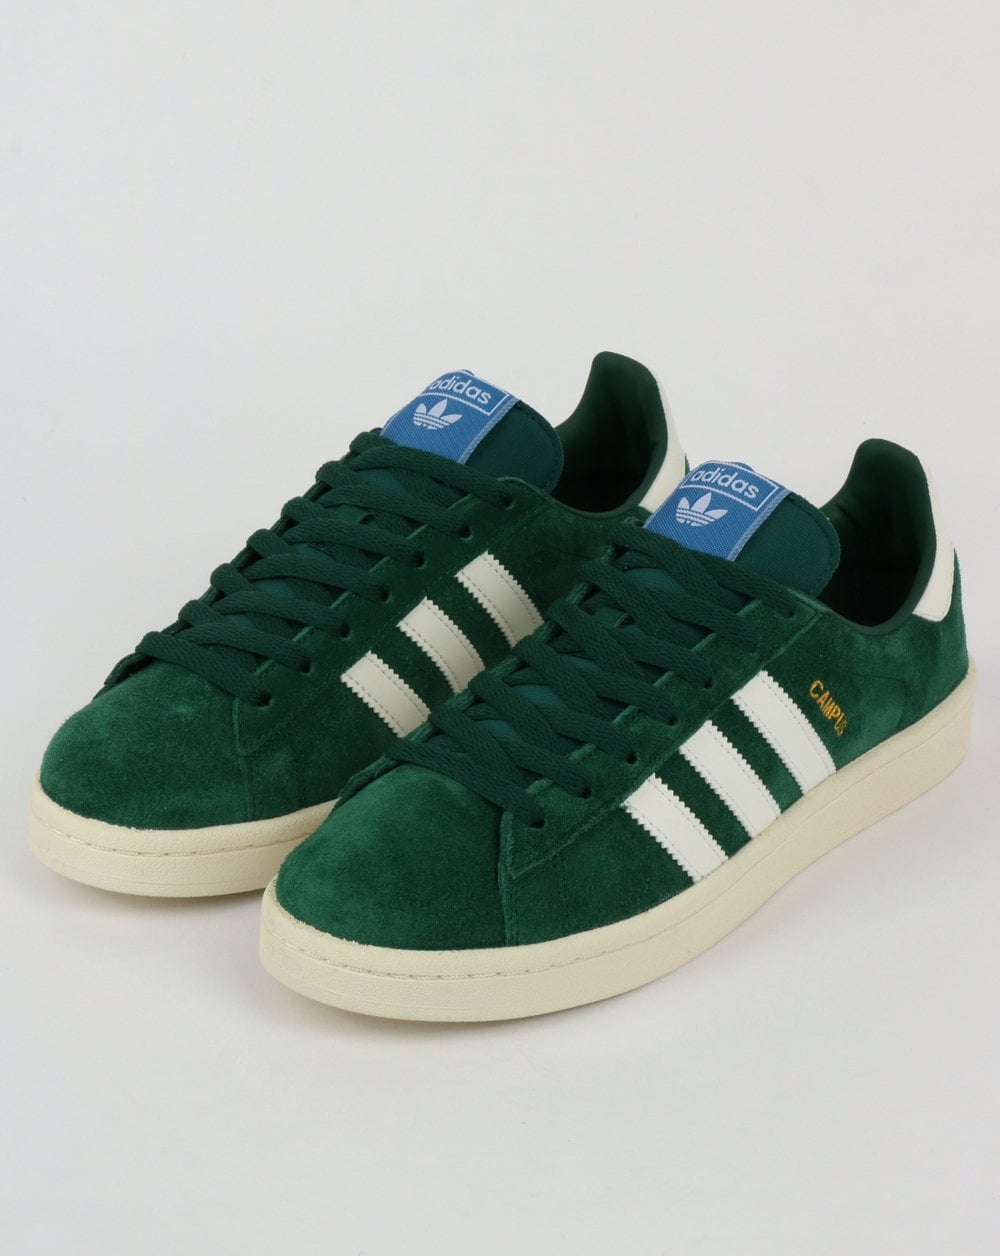 Classic 3 stripes adidas Campus